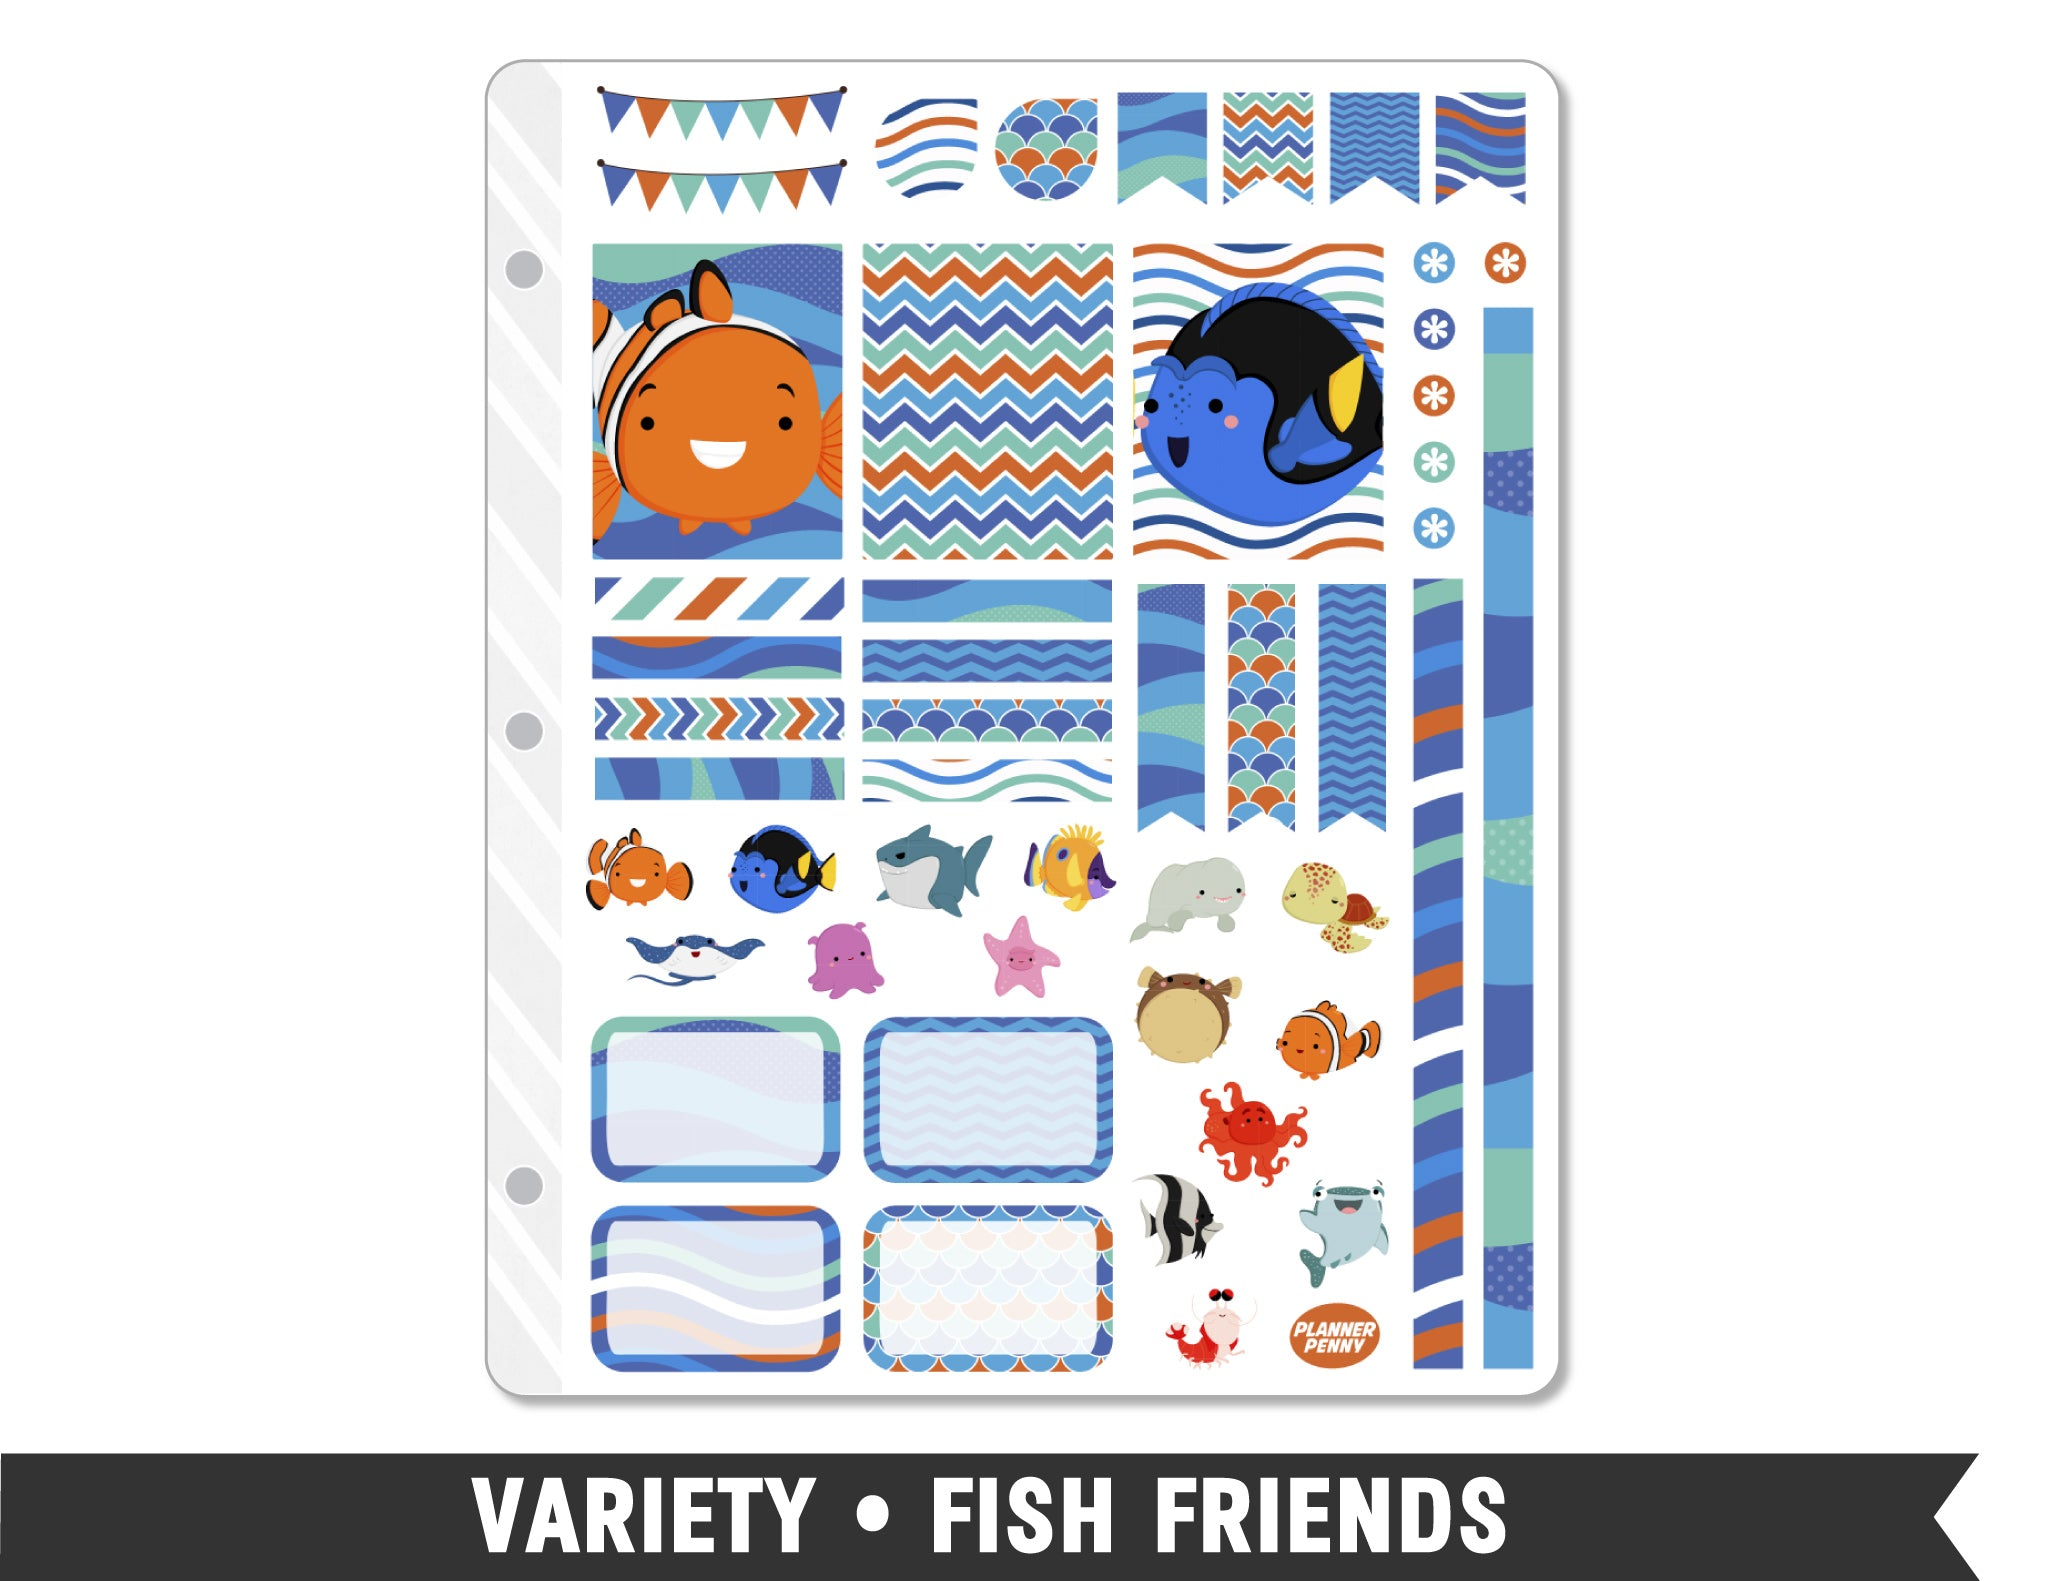 Variety • Fish Friends Weekly Spread Planner Stickers